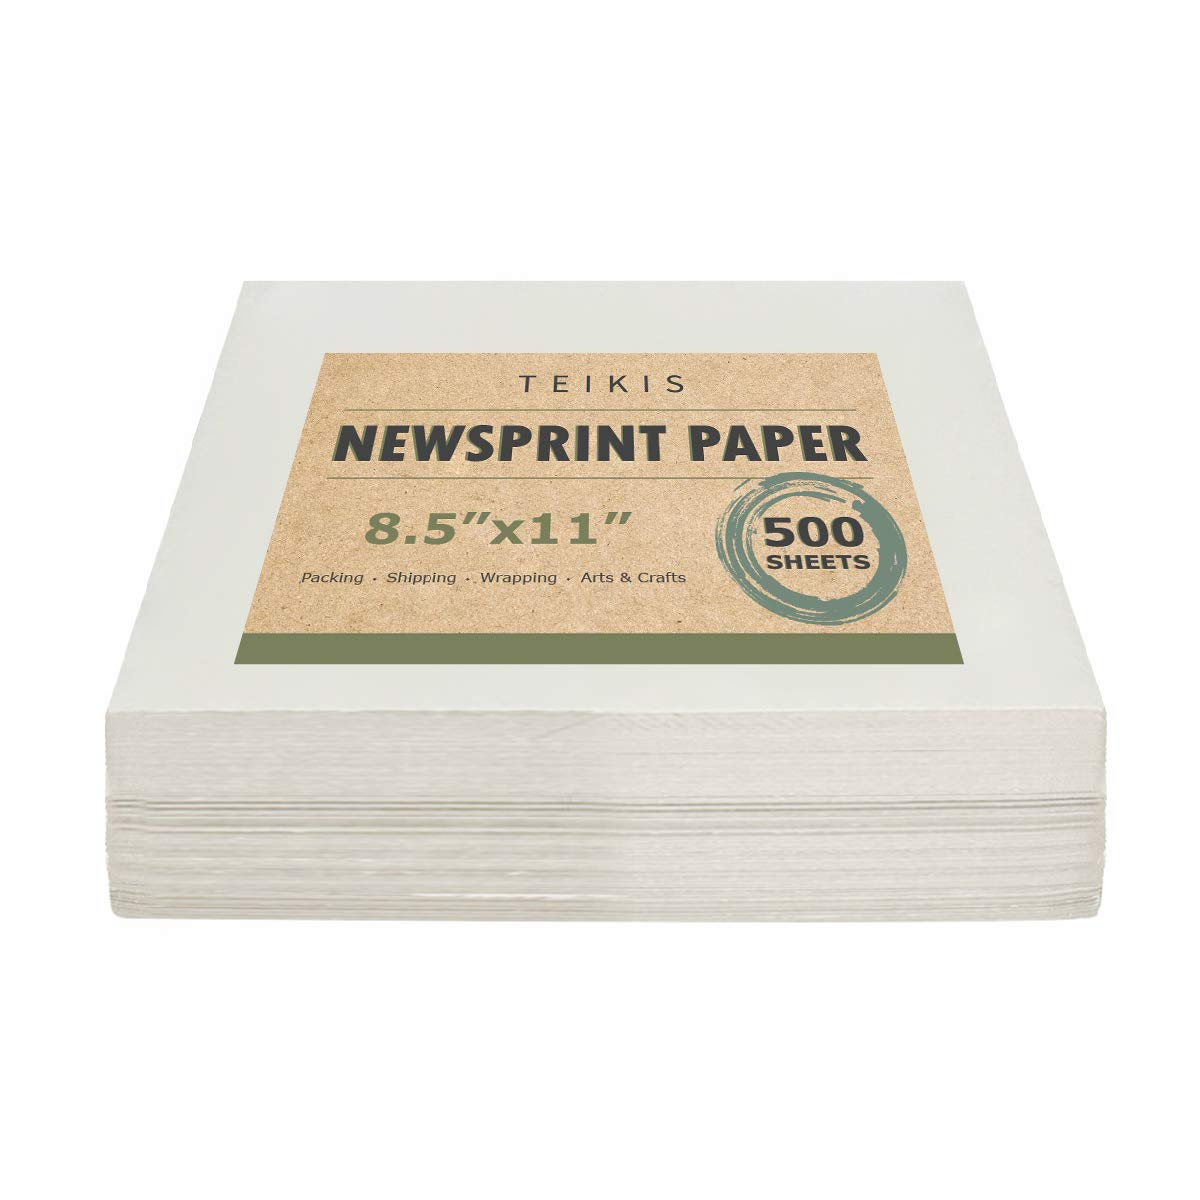 TeiKis Clean Newsprint Packing Drawing Sketch Paper Unprinted - 500 Sheets, 8.5 x 11 inch